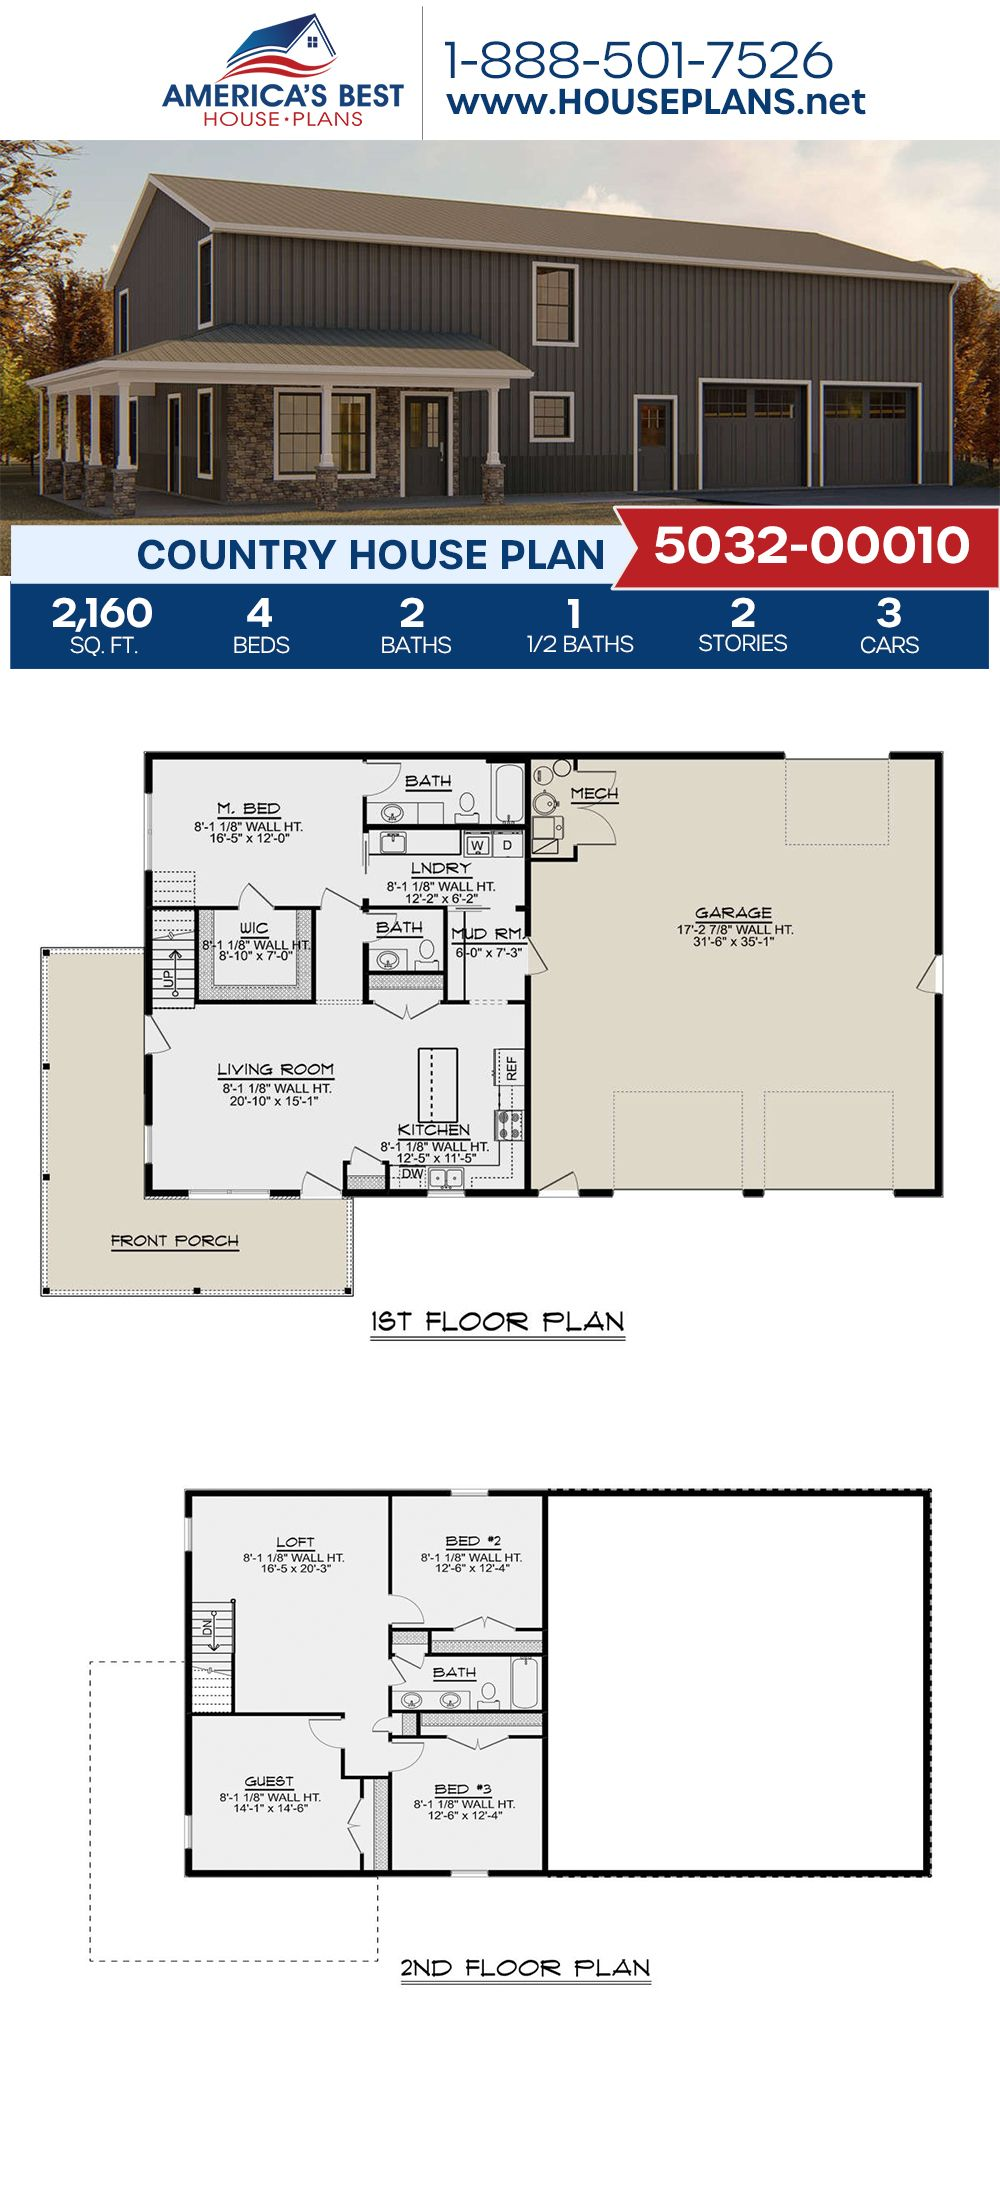 House Plan 5032 00010 Farmhouse Plan 2 160 Square Feet 4 Bedrooms 2 5 Bathrooms Barn House Plans Barn Homes Floor Plans Pole Barn House Plans